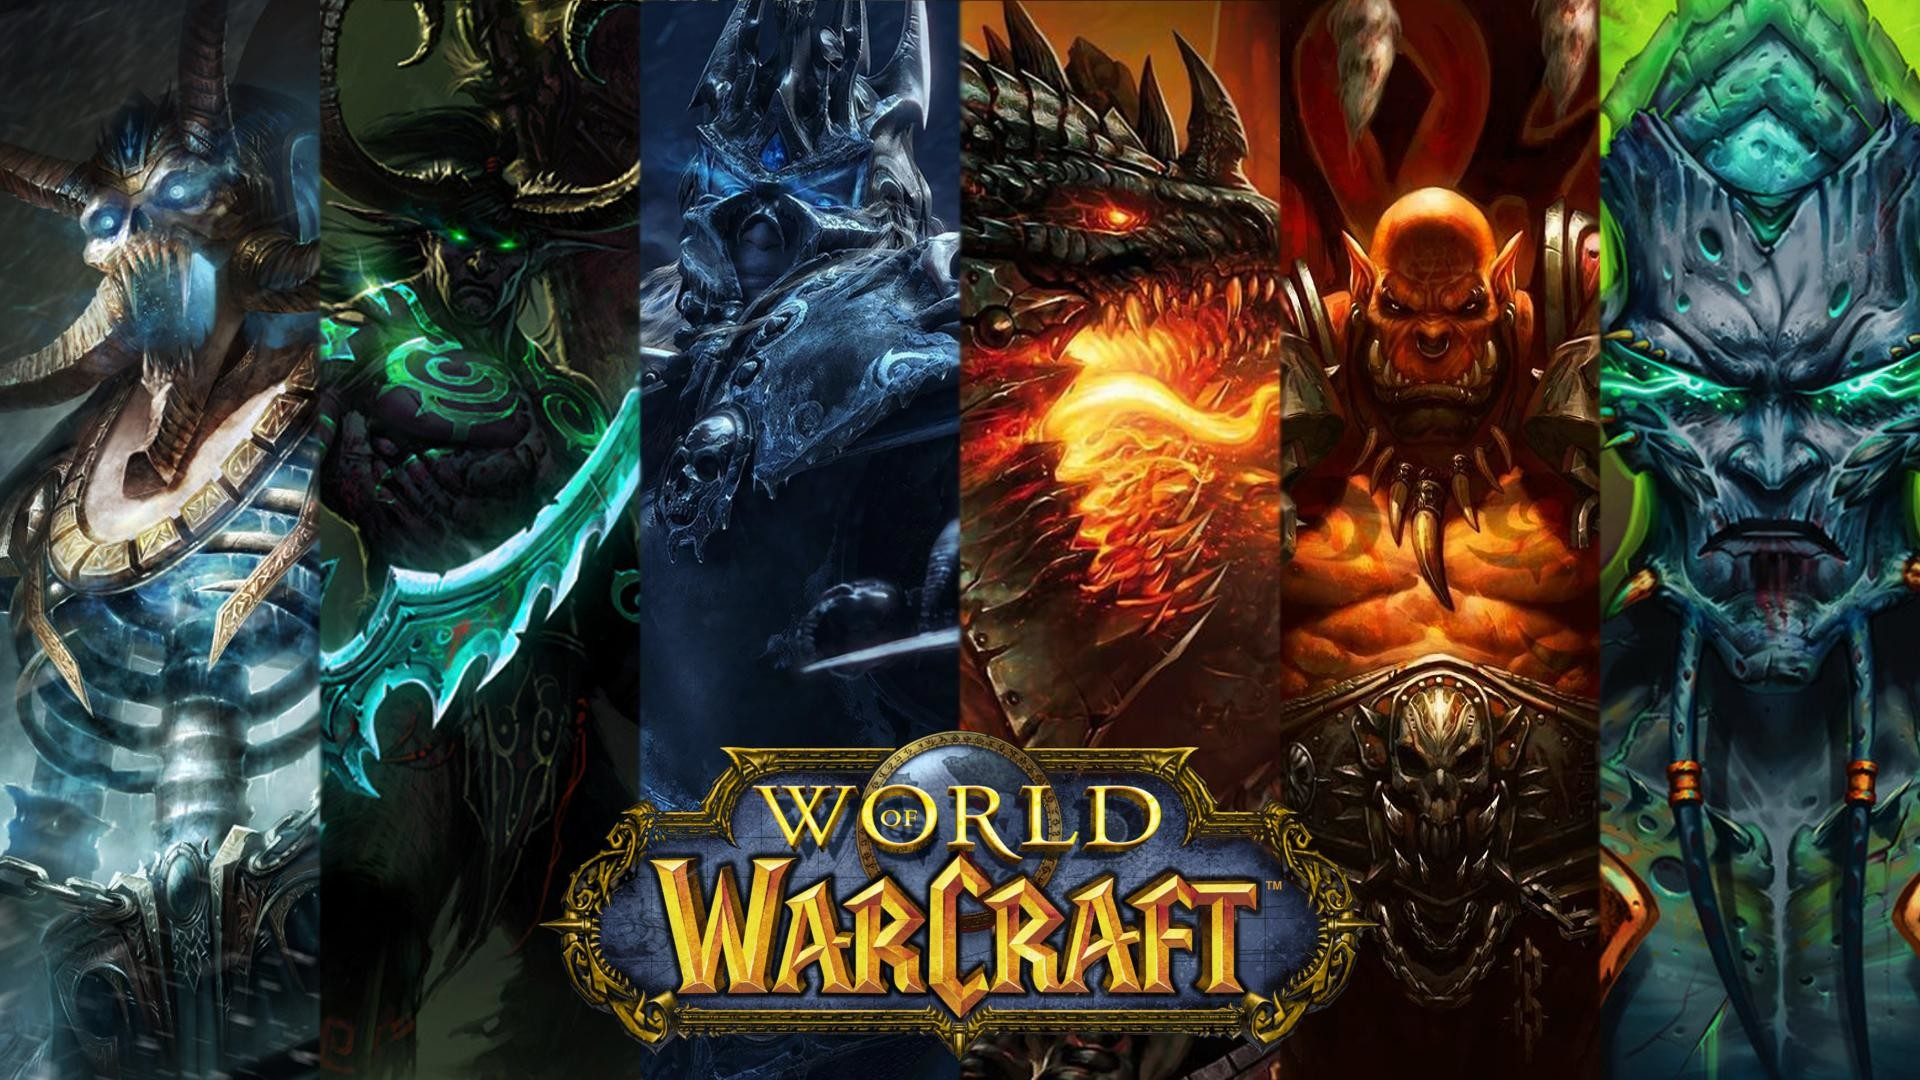 ImageSomeone requested an updated WoW Wallpaper, here's what I came up with.